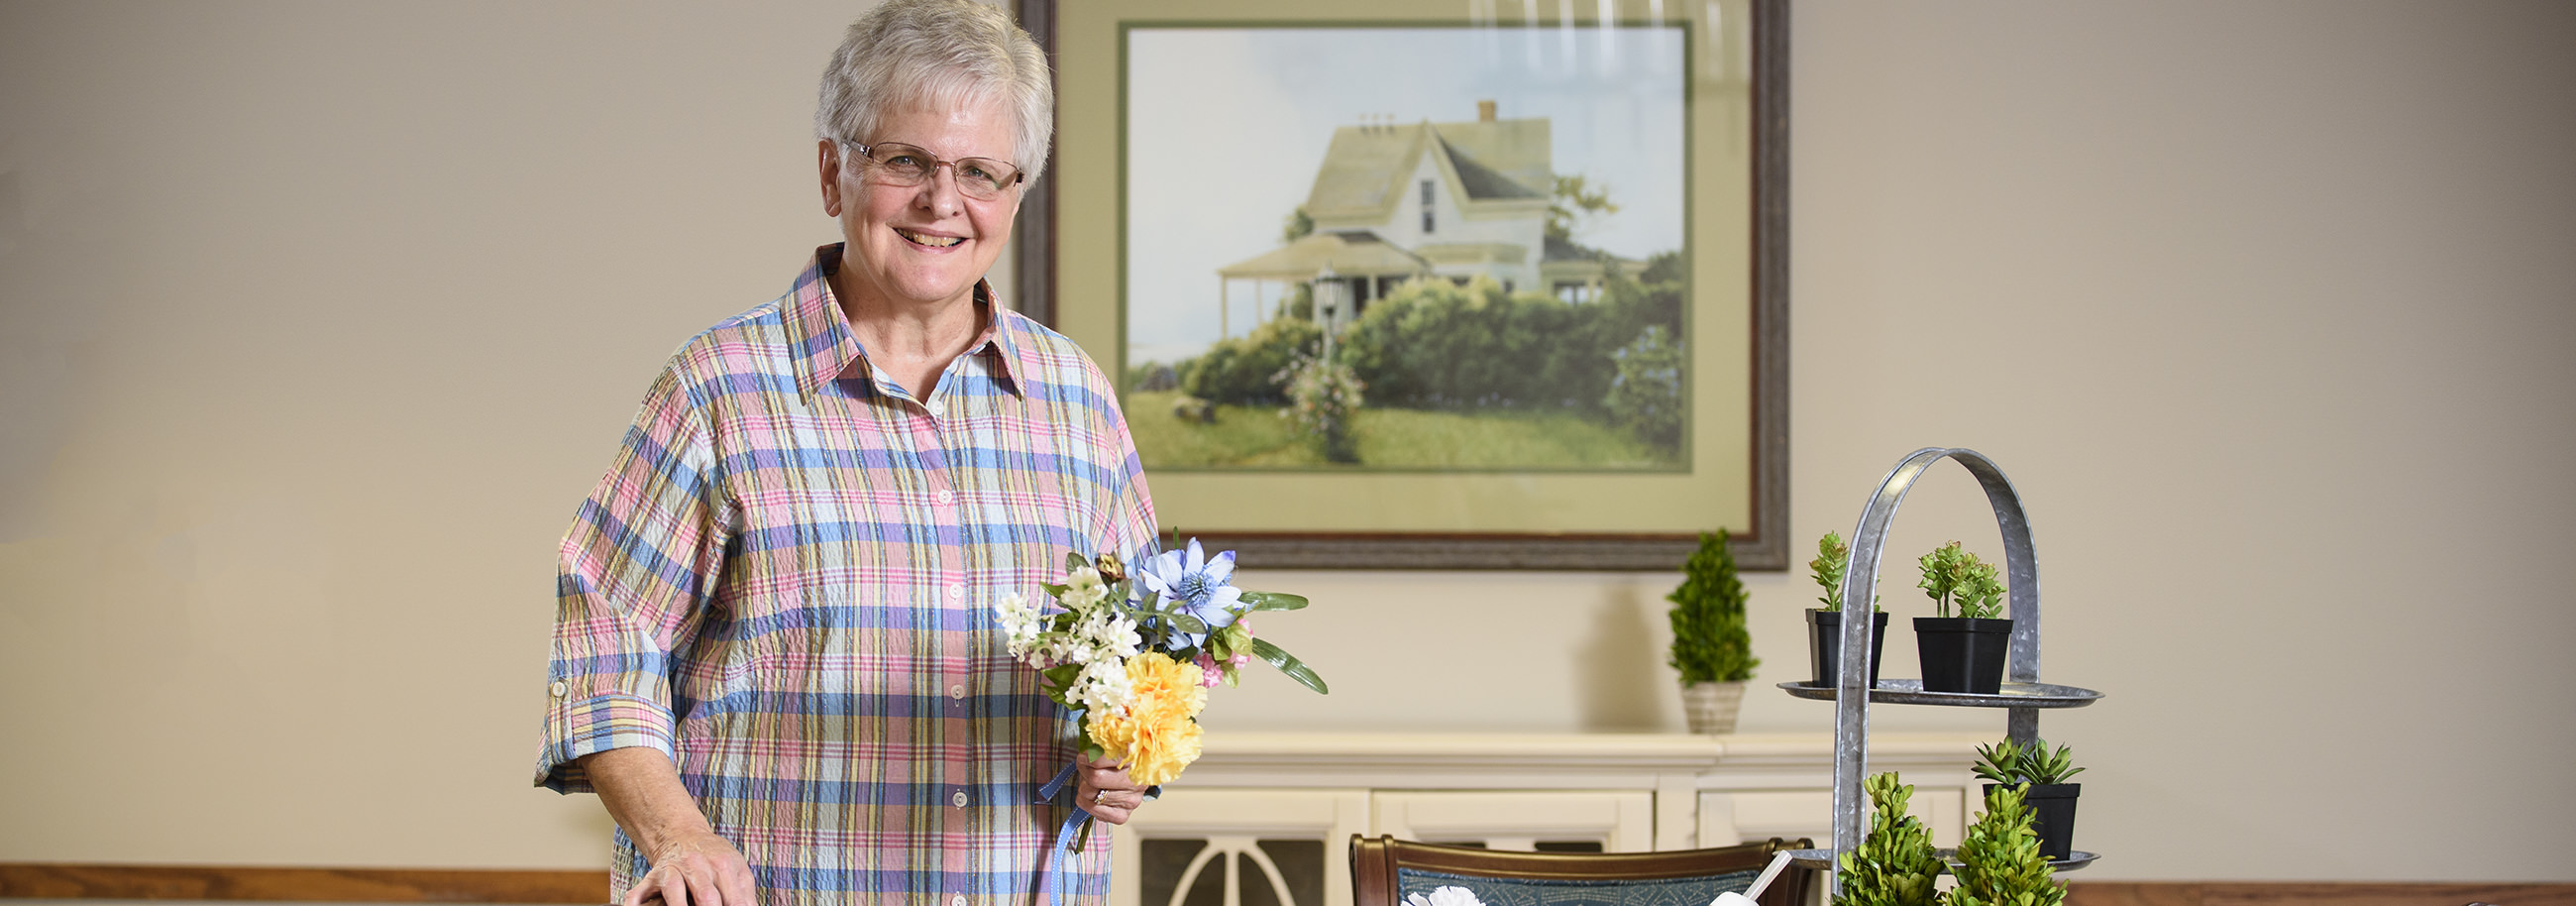 Gladys Kolb loves to serve other people. She volunteers in a variety of ways at Garden Spot Village including through Caring Connections and in Mountain View.